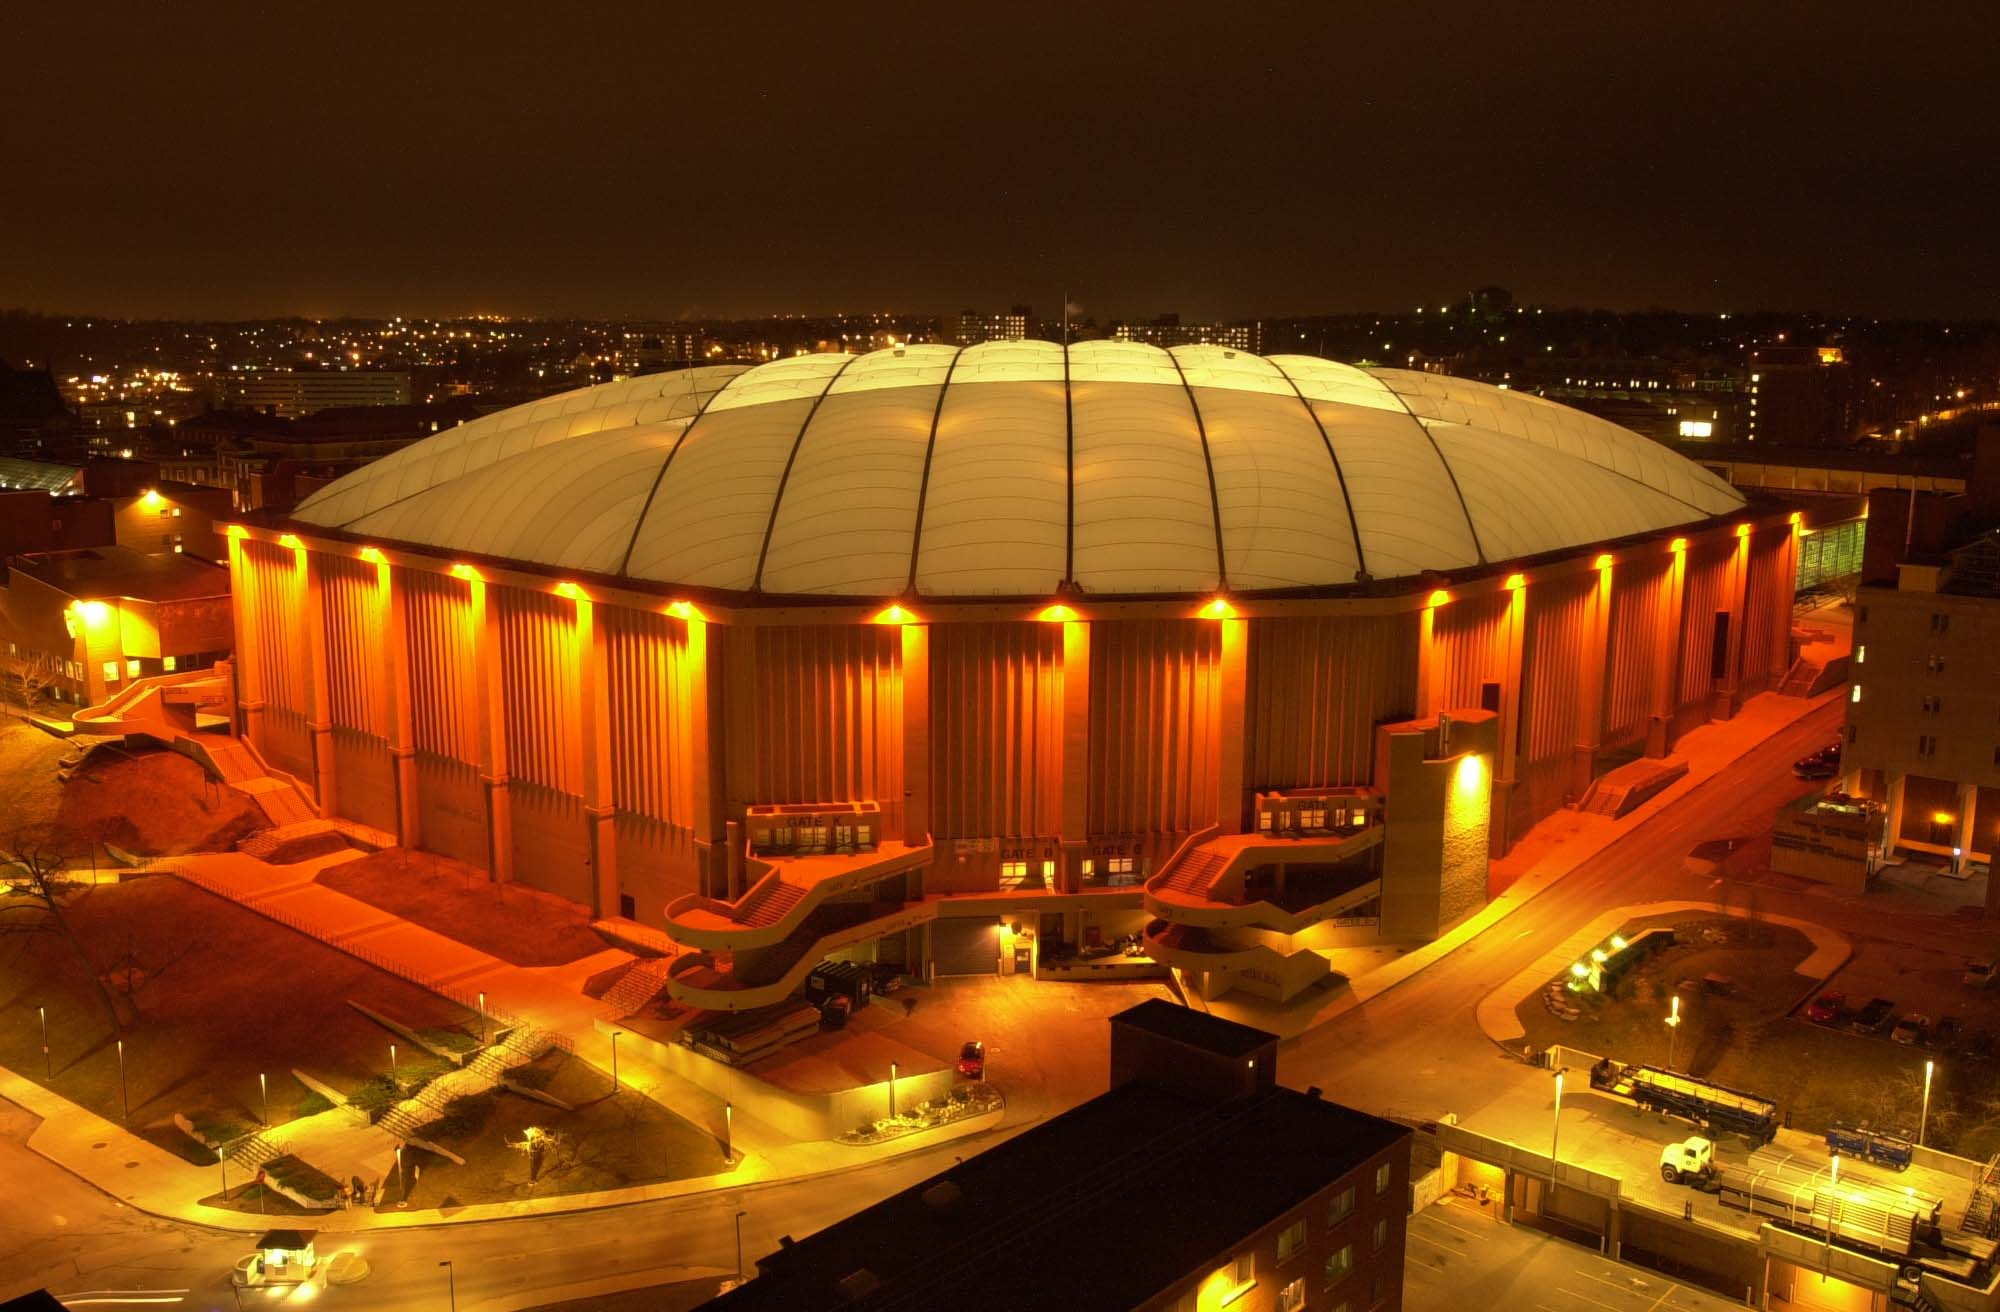 Syracuse housesthe Carrier Dome (also known as the Loud House); image courtesy of  Google